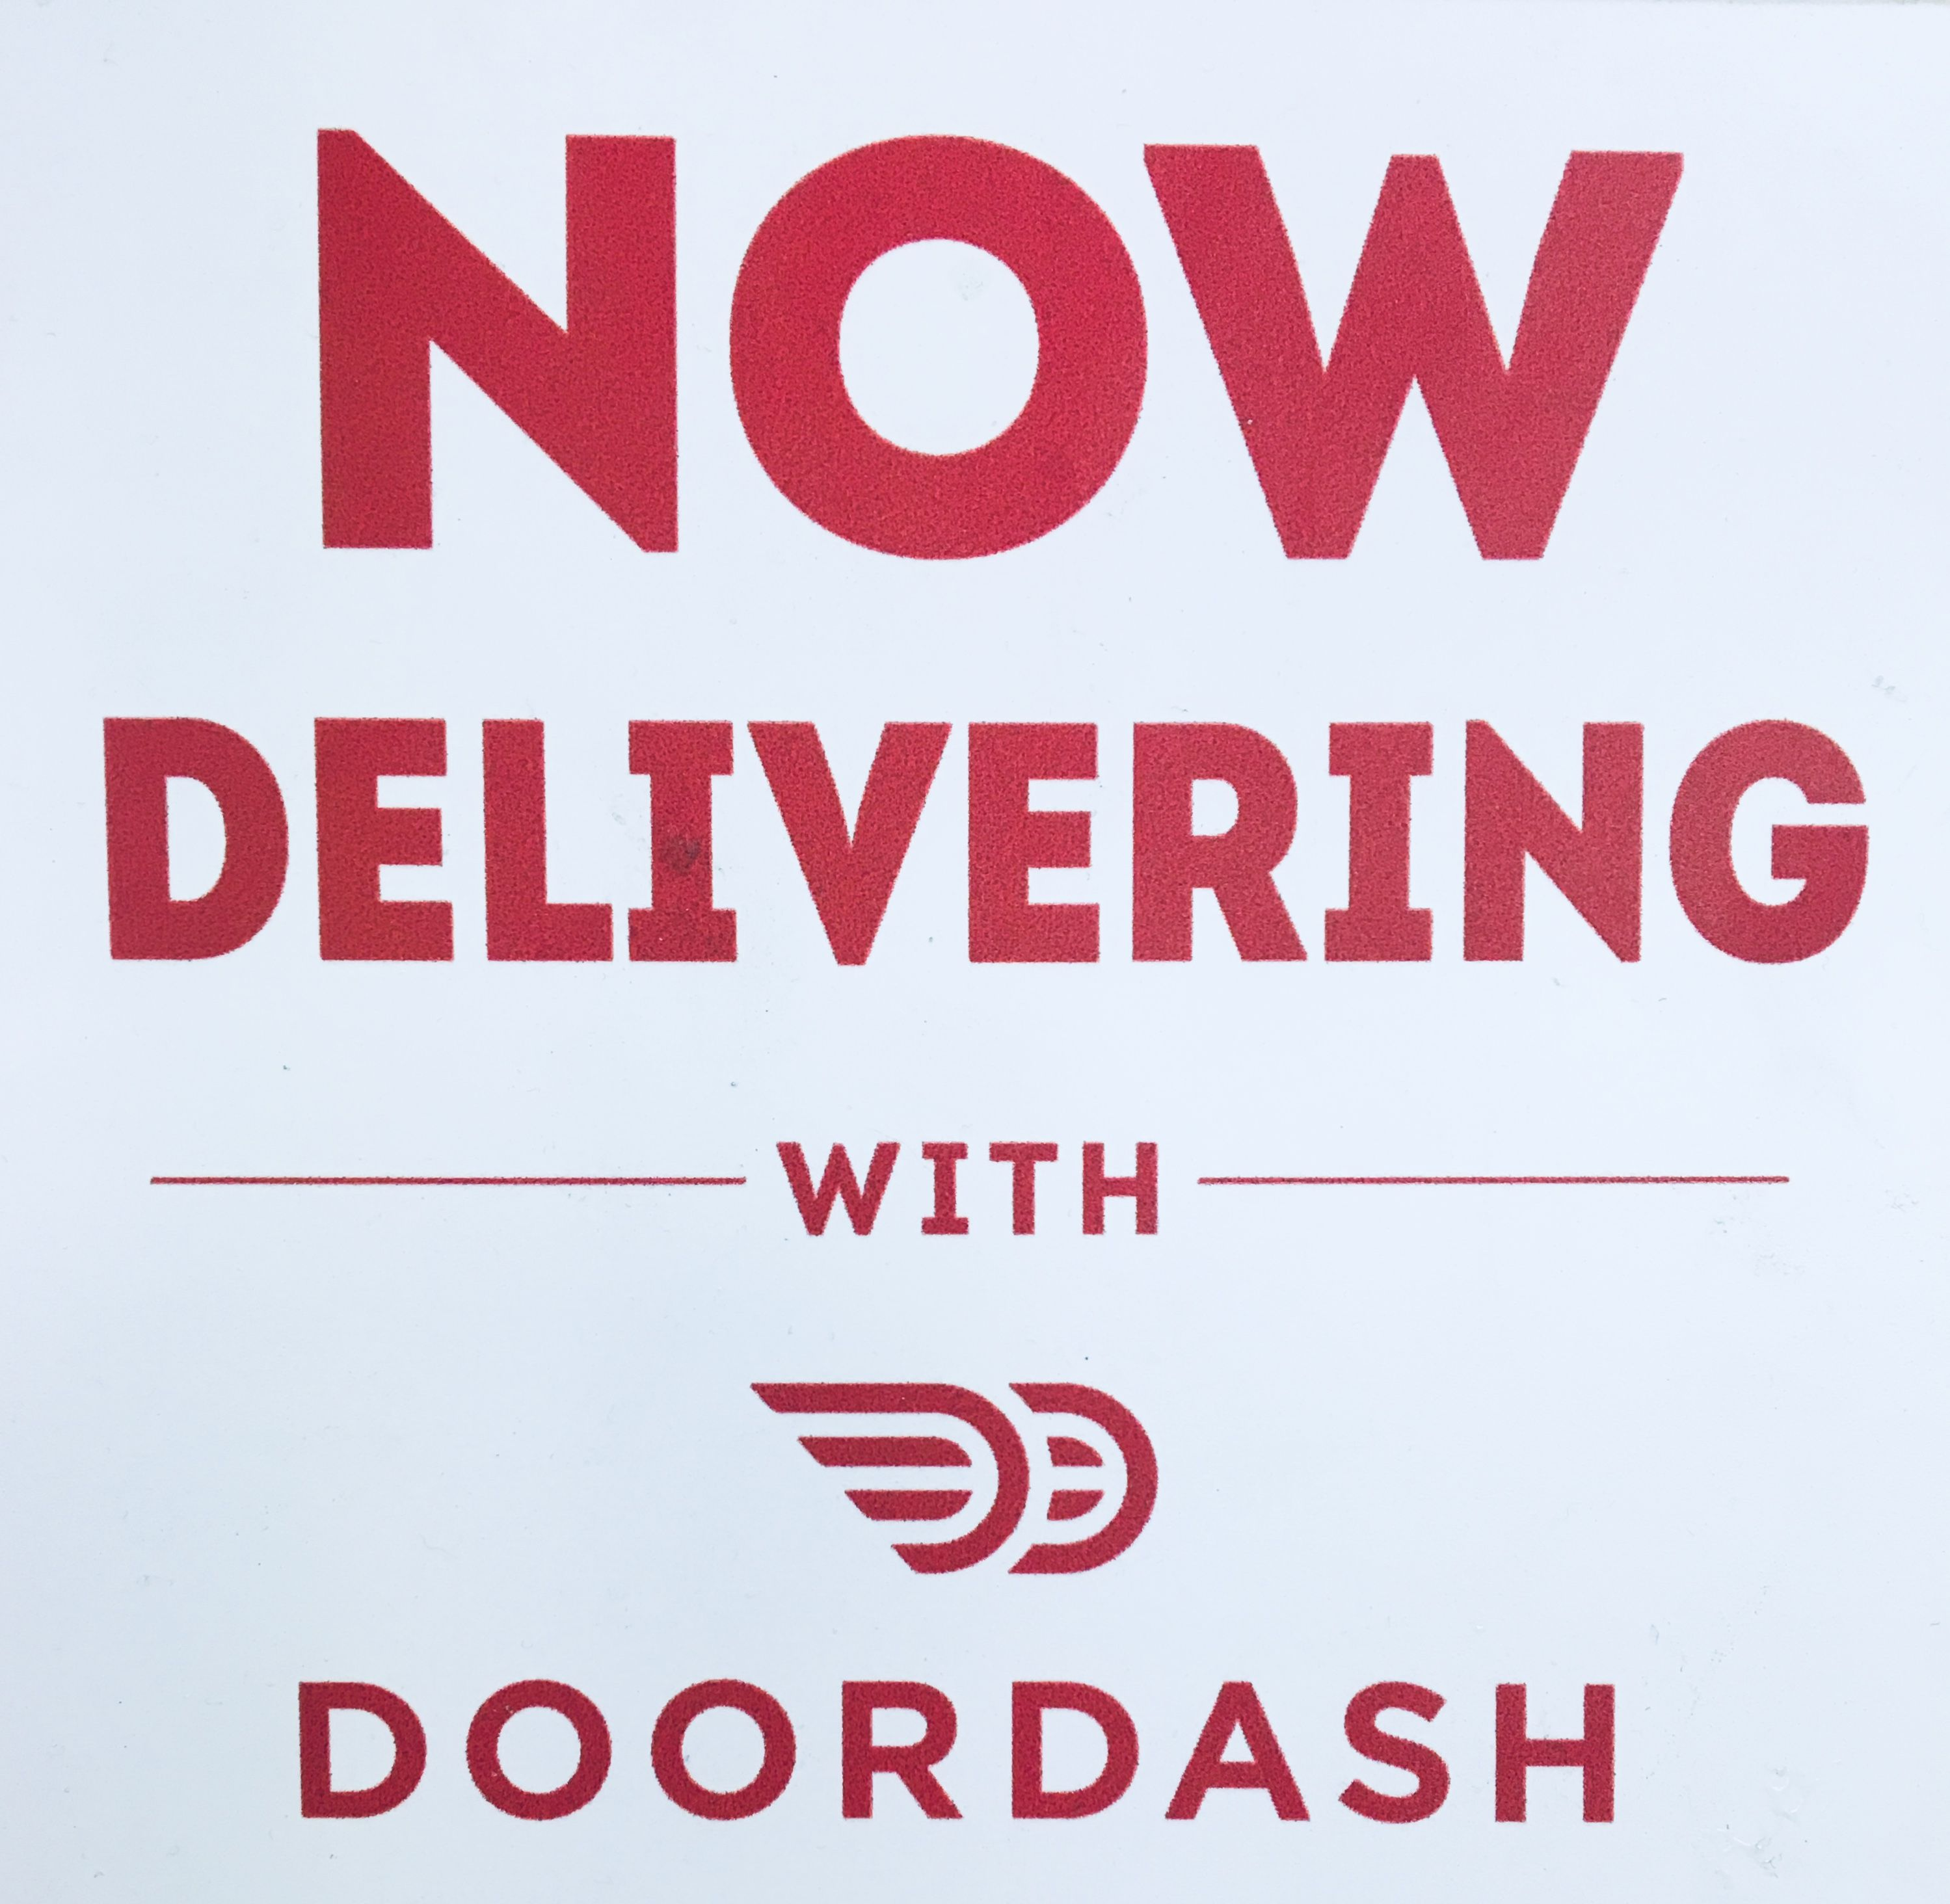 Become a DoorDash driver! Make great money on your own